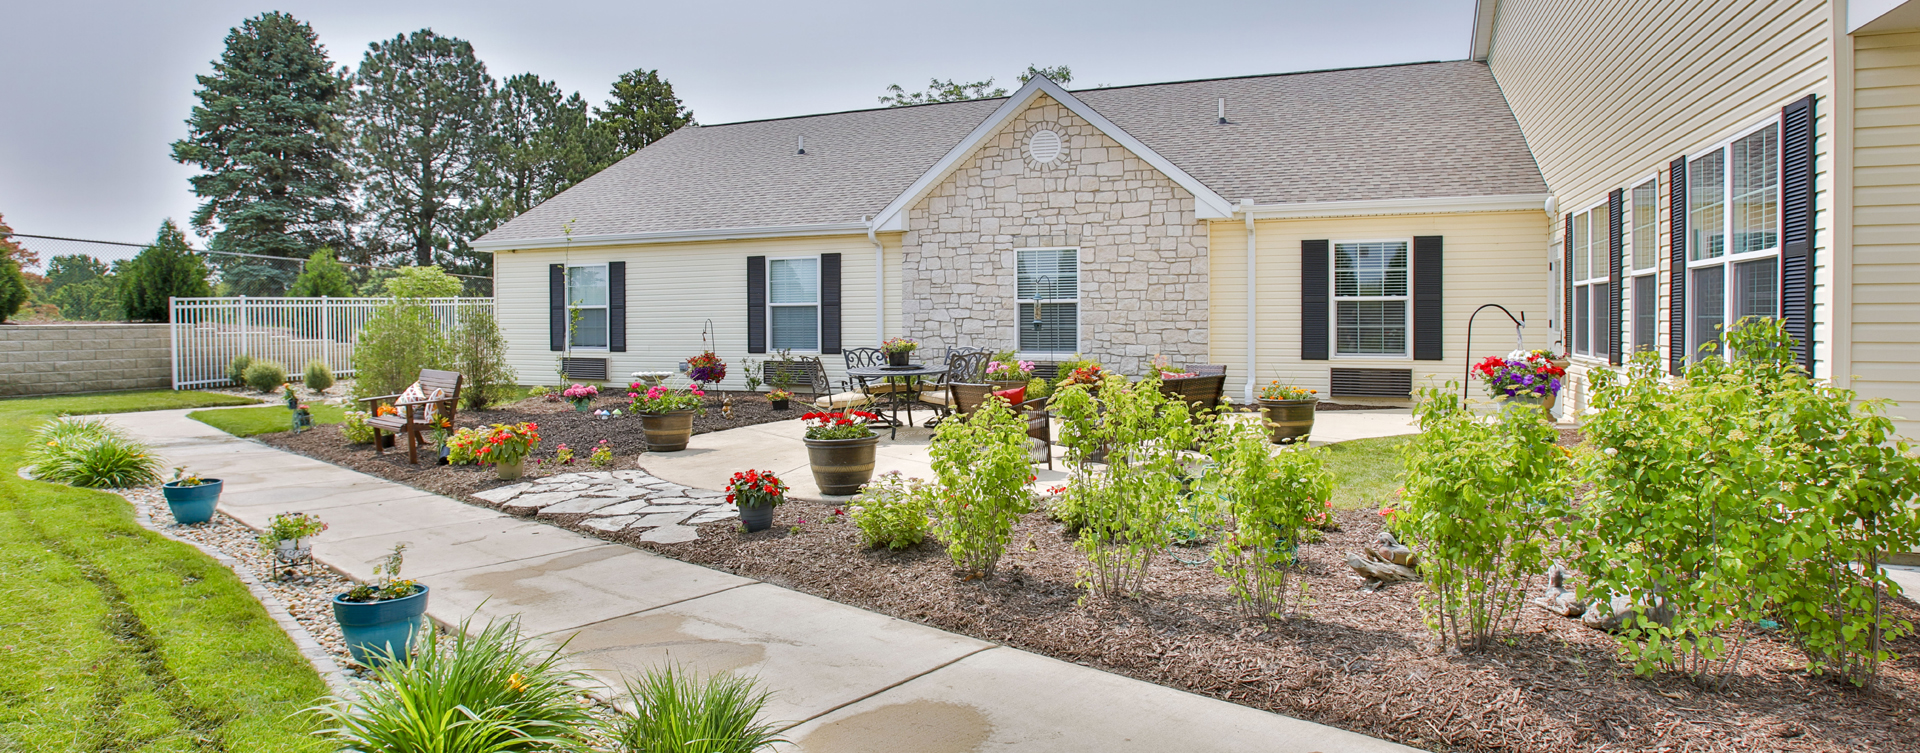 Residents with dementia can enjoy a traveling path, relaxed seating and raised garden beds in the courtyard at Bickford of Bloomington